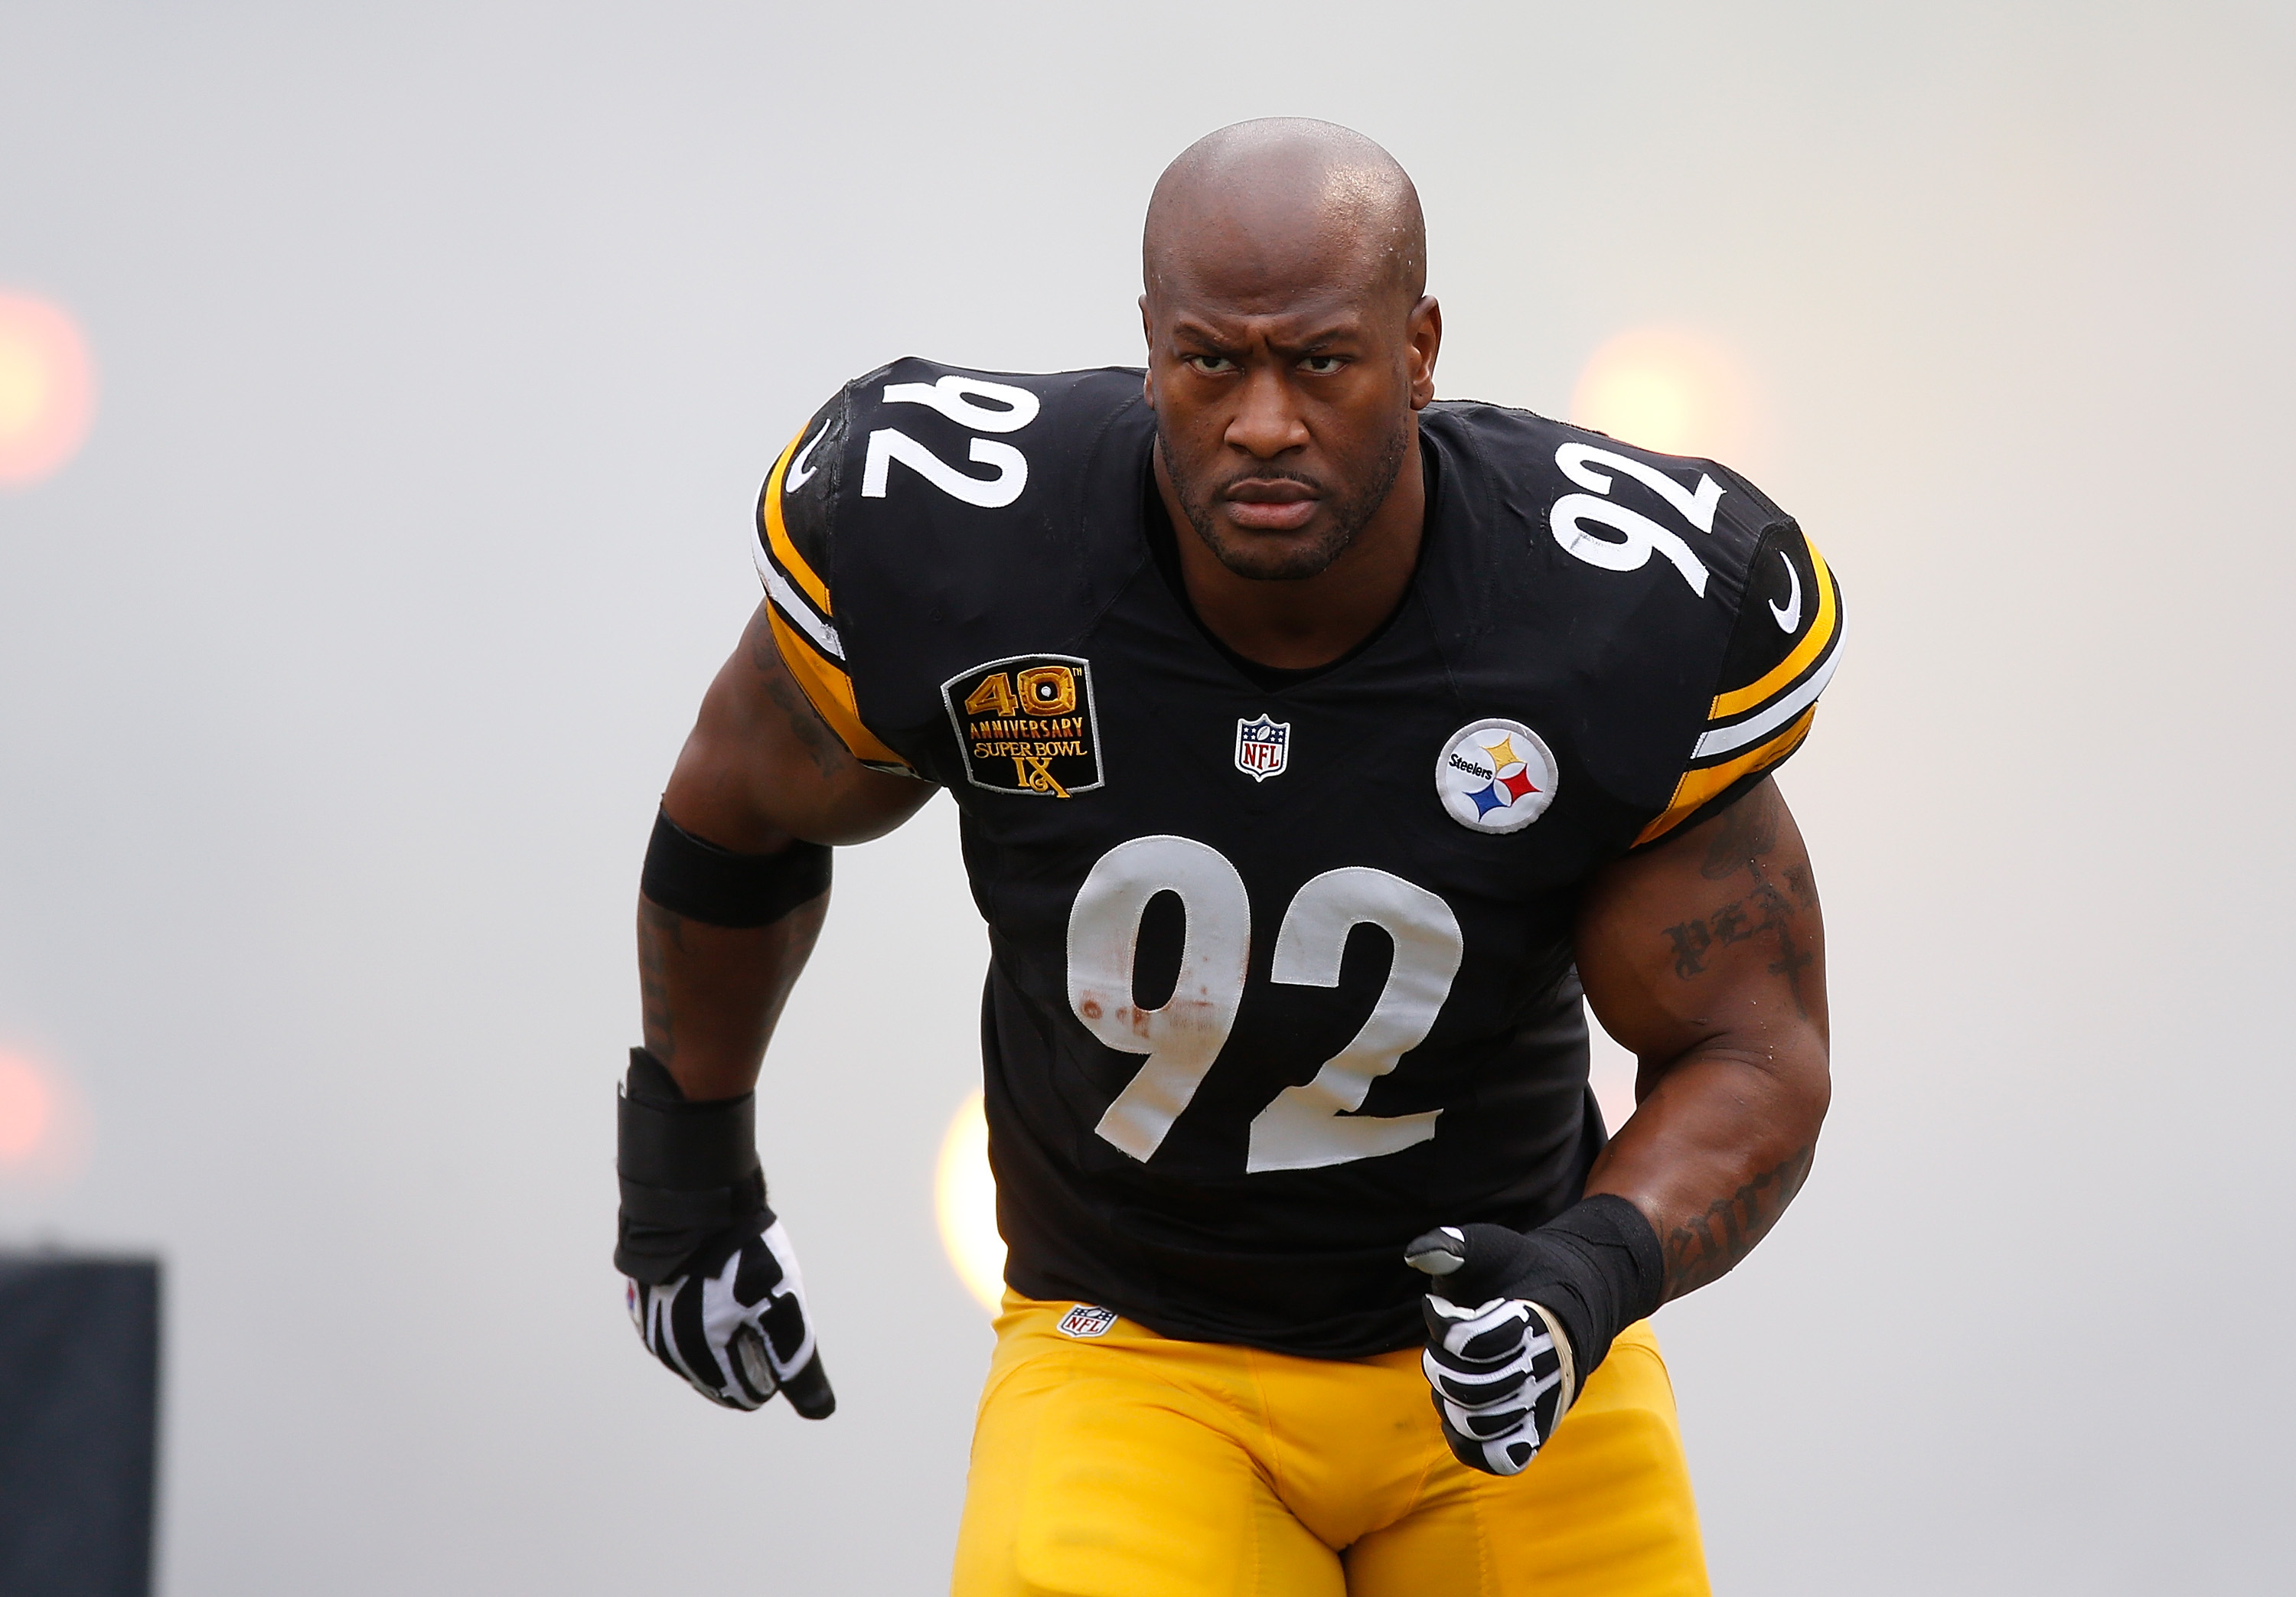 Steelers release LB James Harrison